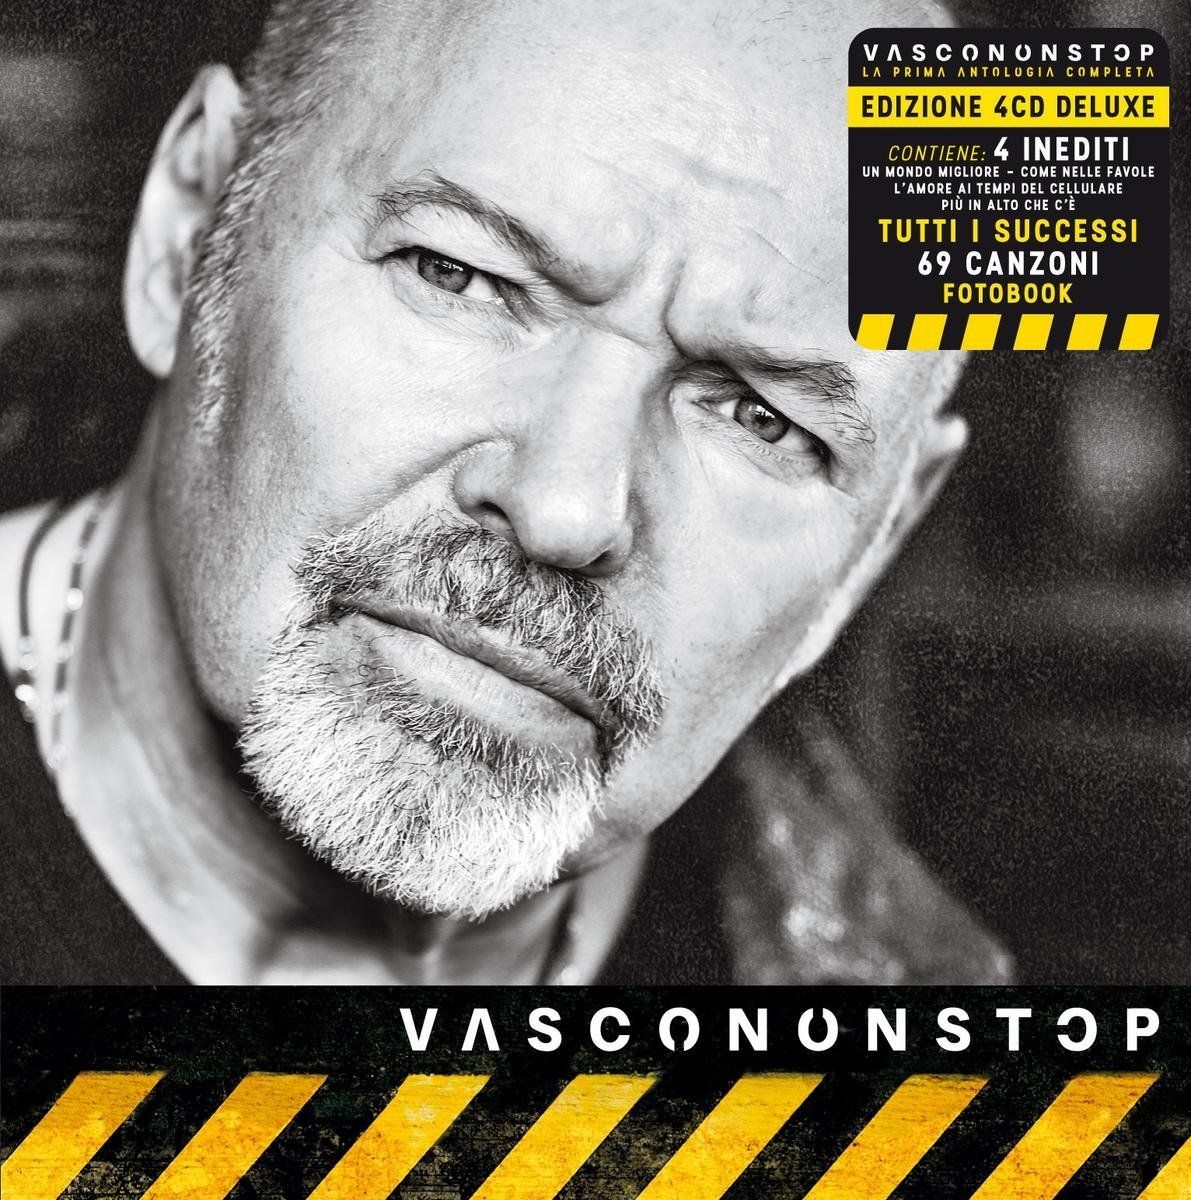 Vasco Rossi - Vascononstop album cover